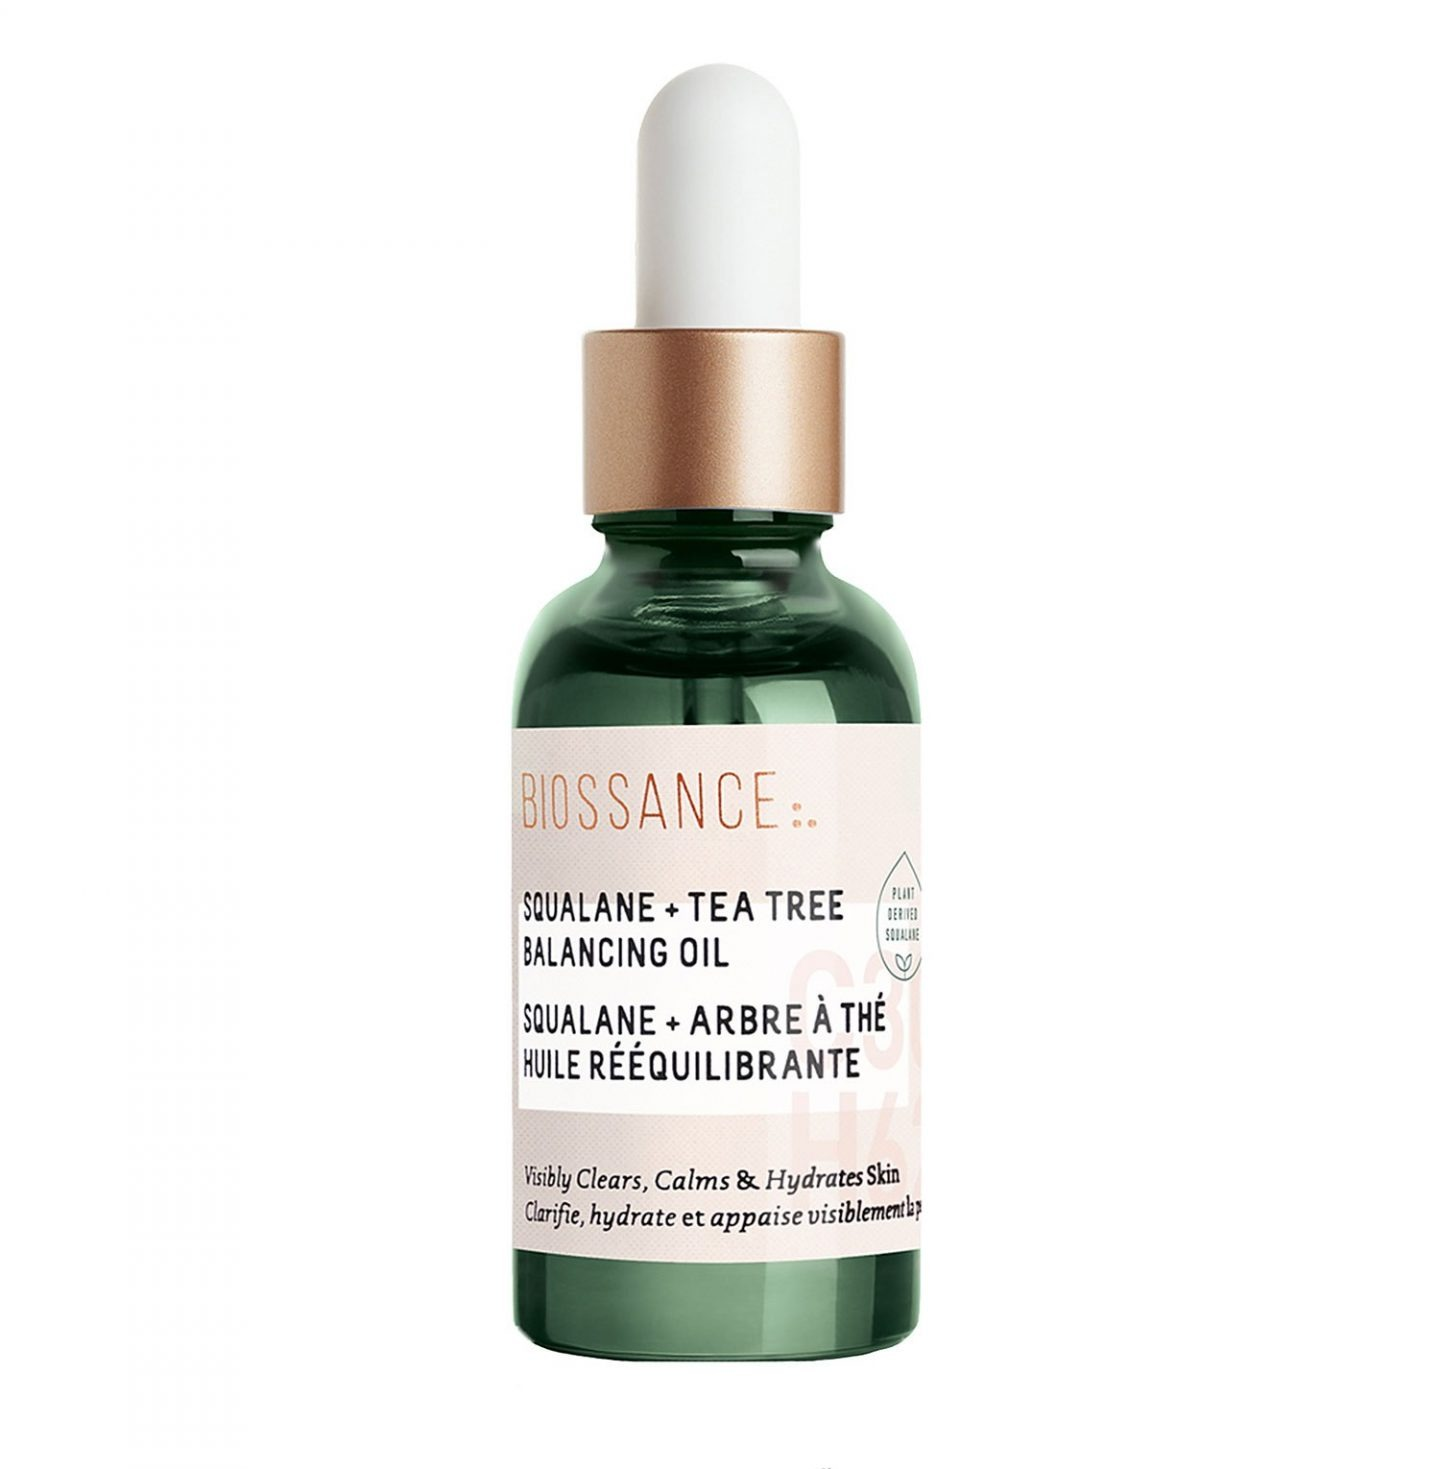 best 5 facial oils for all skin types Biossance Squalane + Tea Tree Balancing Oil